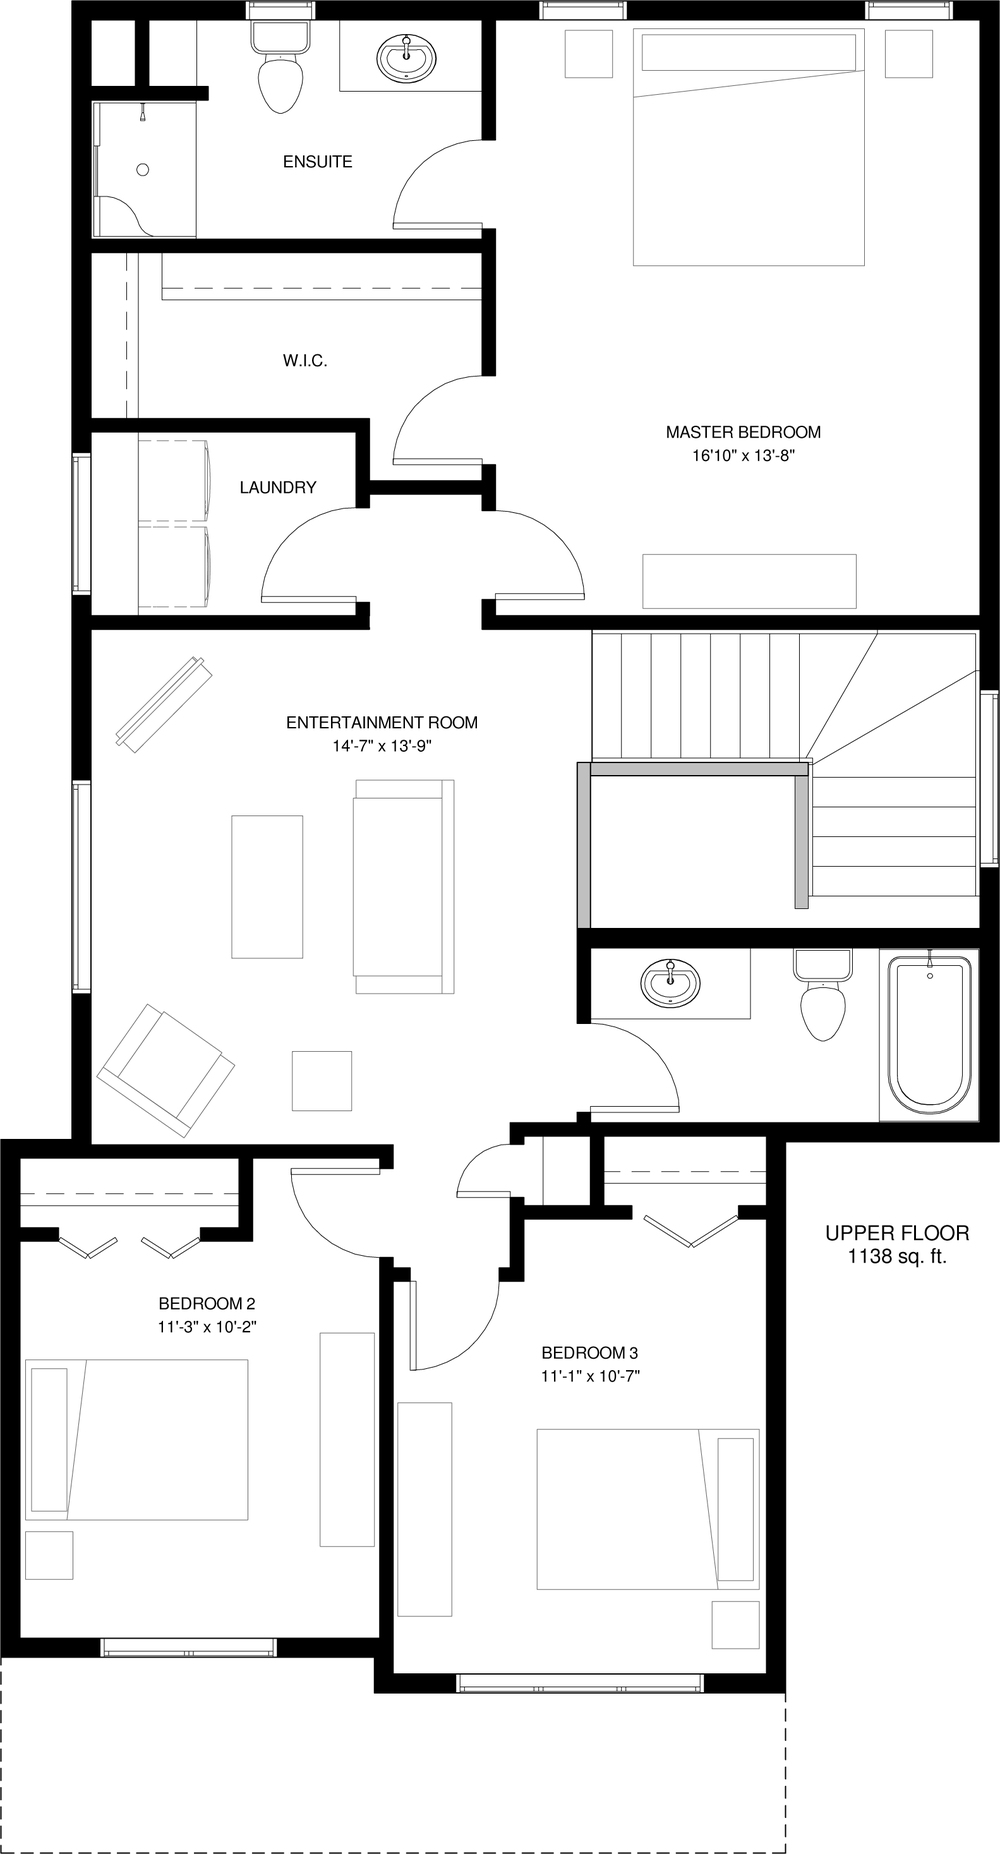 Upper Floor 1138 sq ft